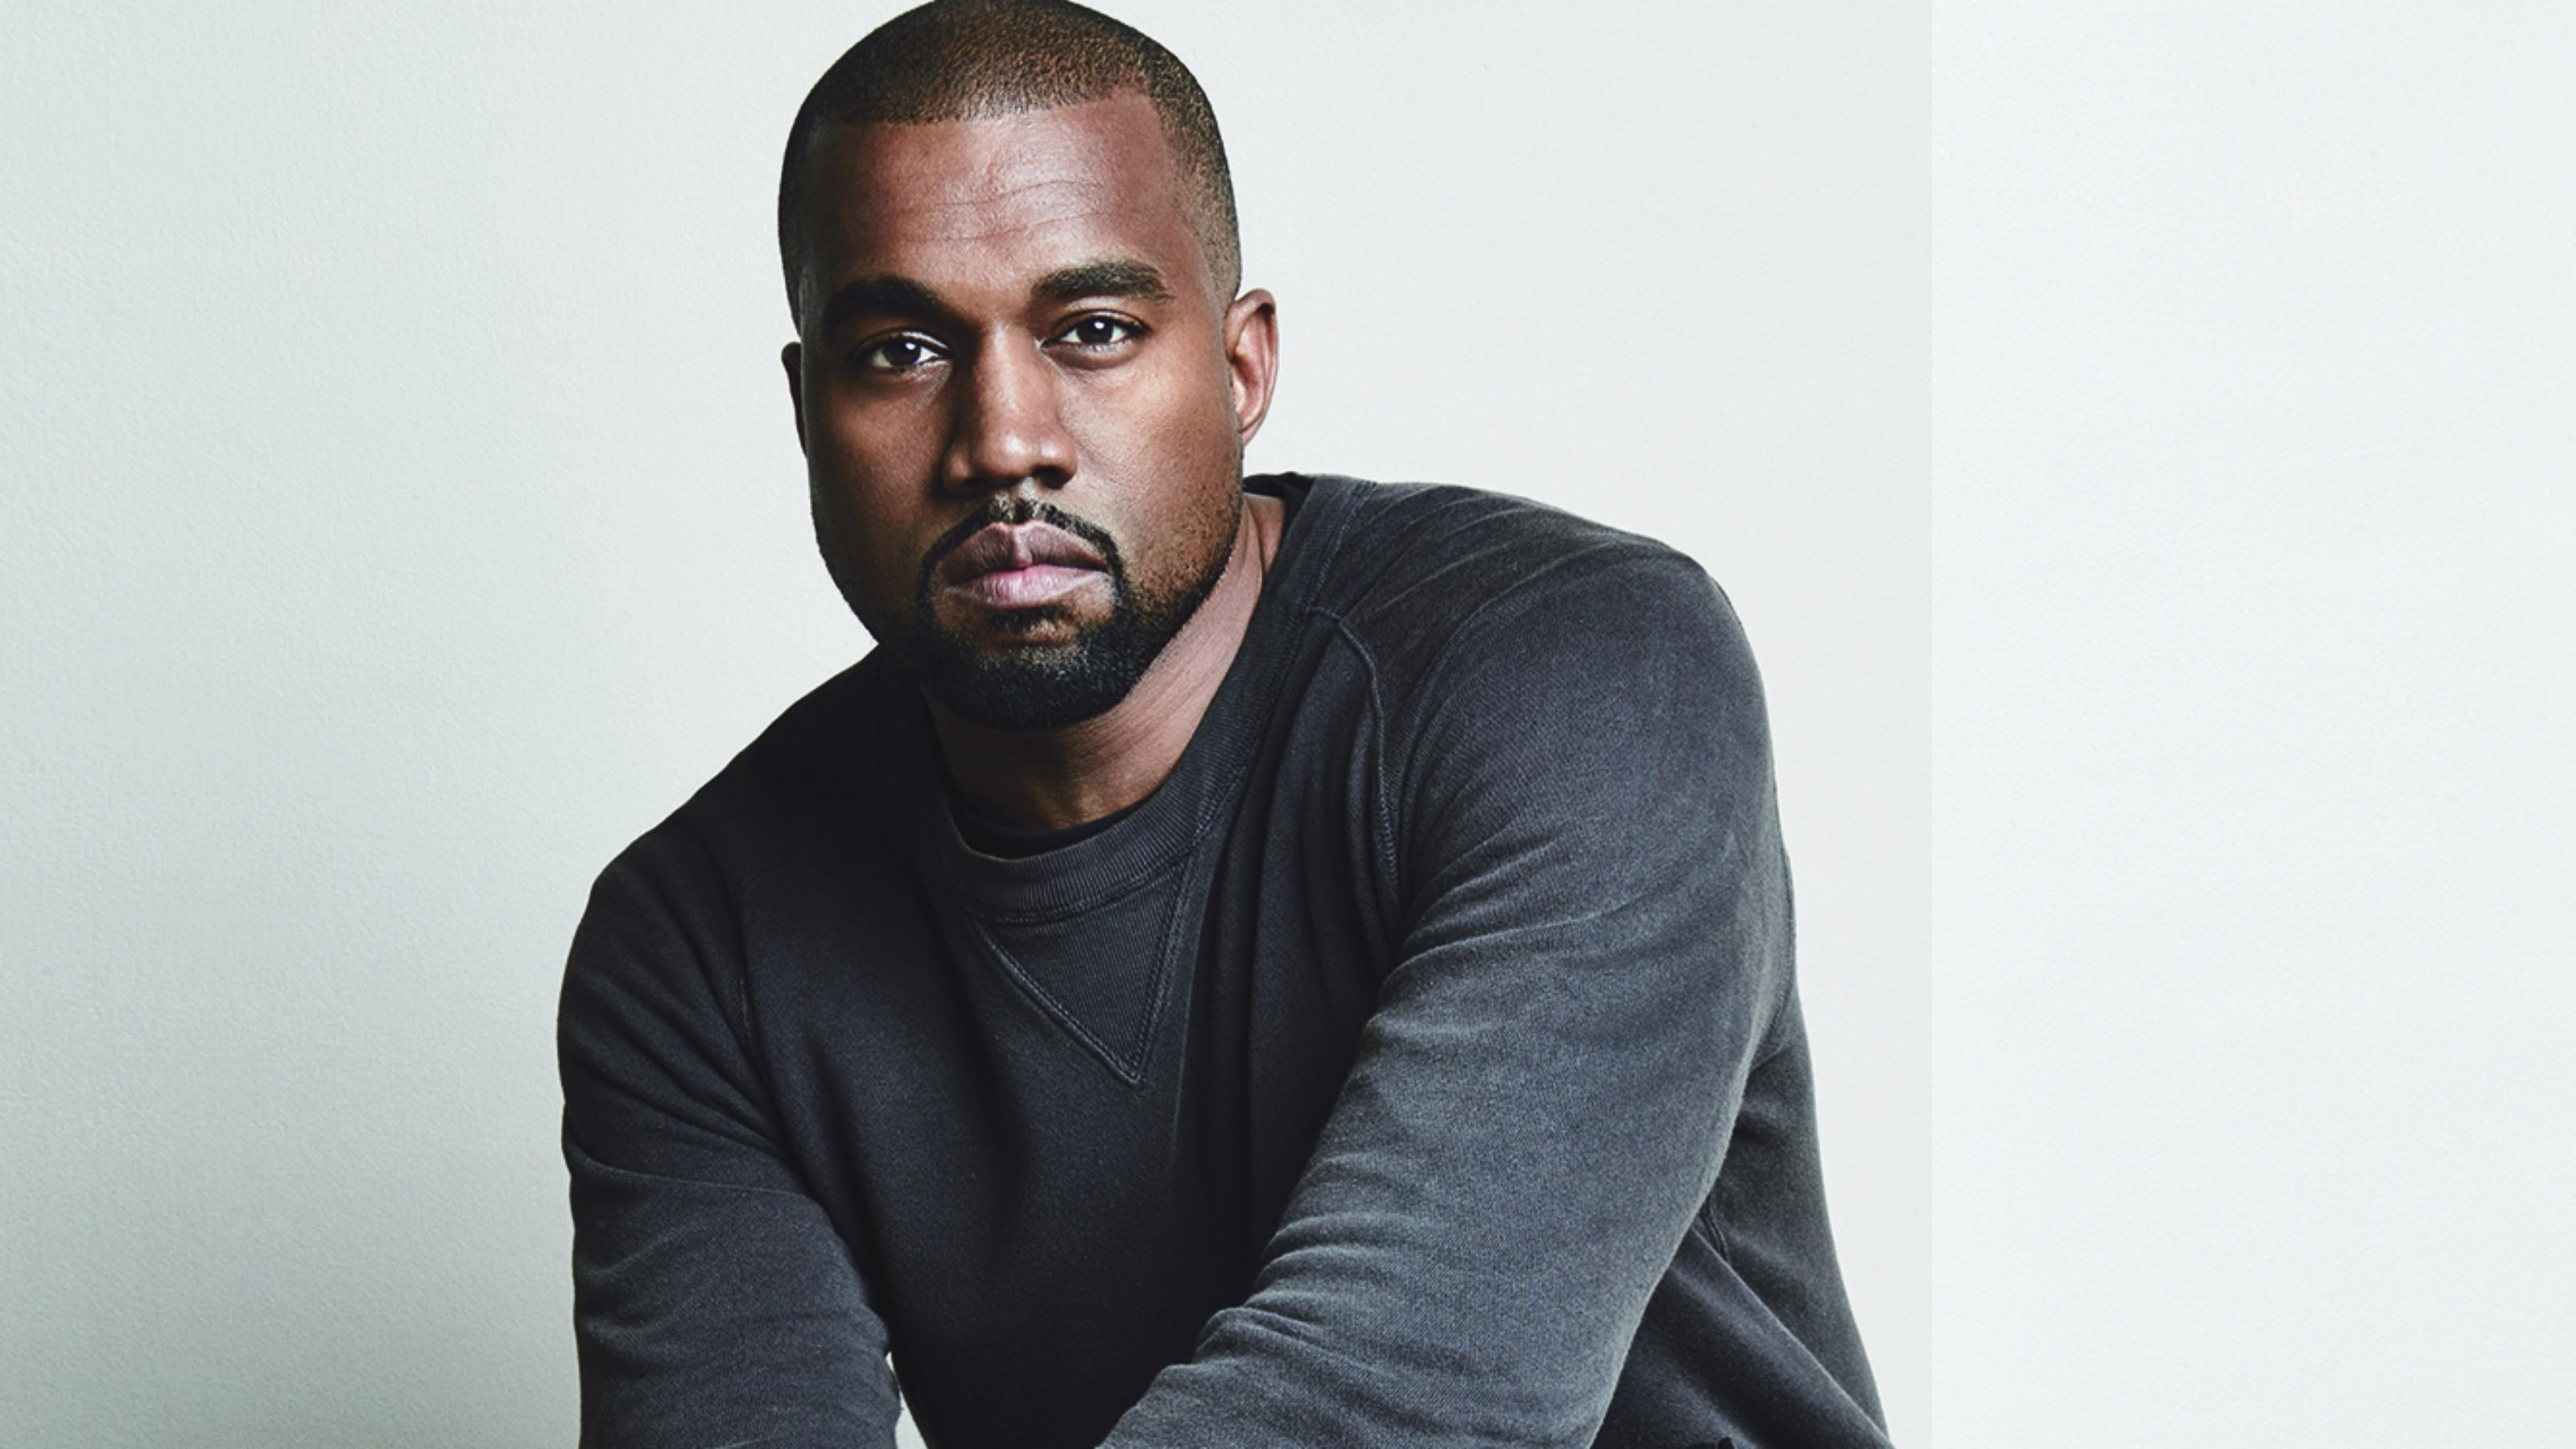 Kanye West  poursuit l'assureur Lloyd'spour 10 millions de dollars